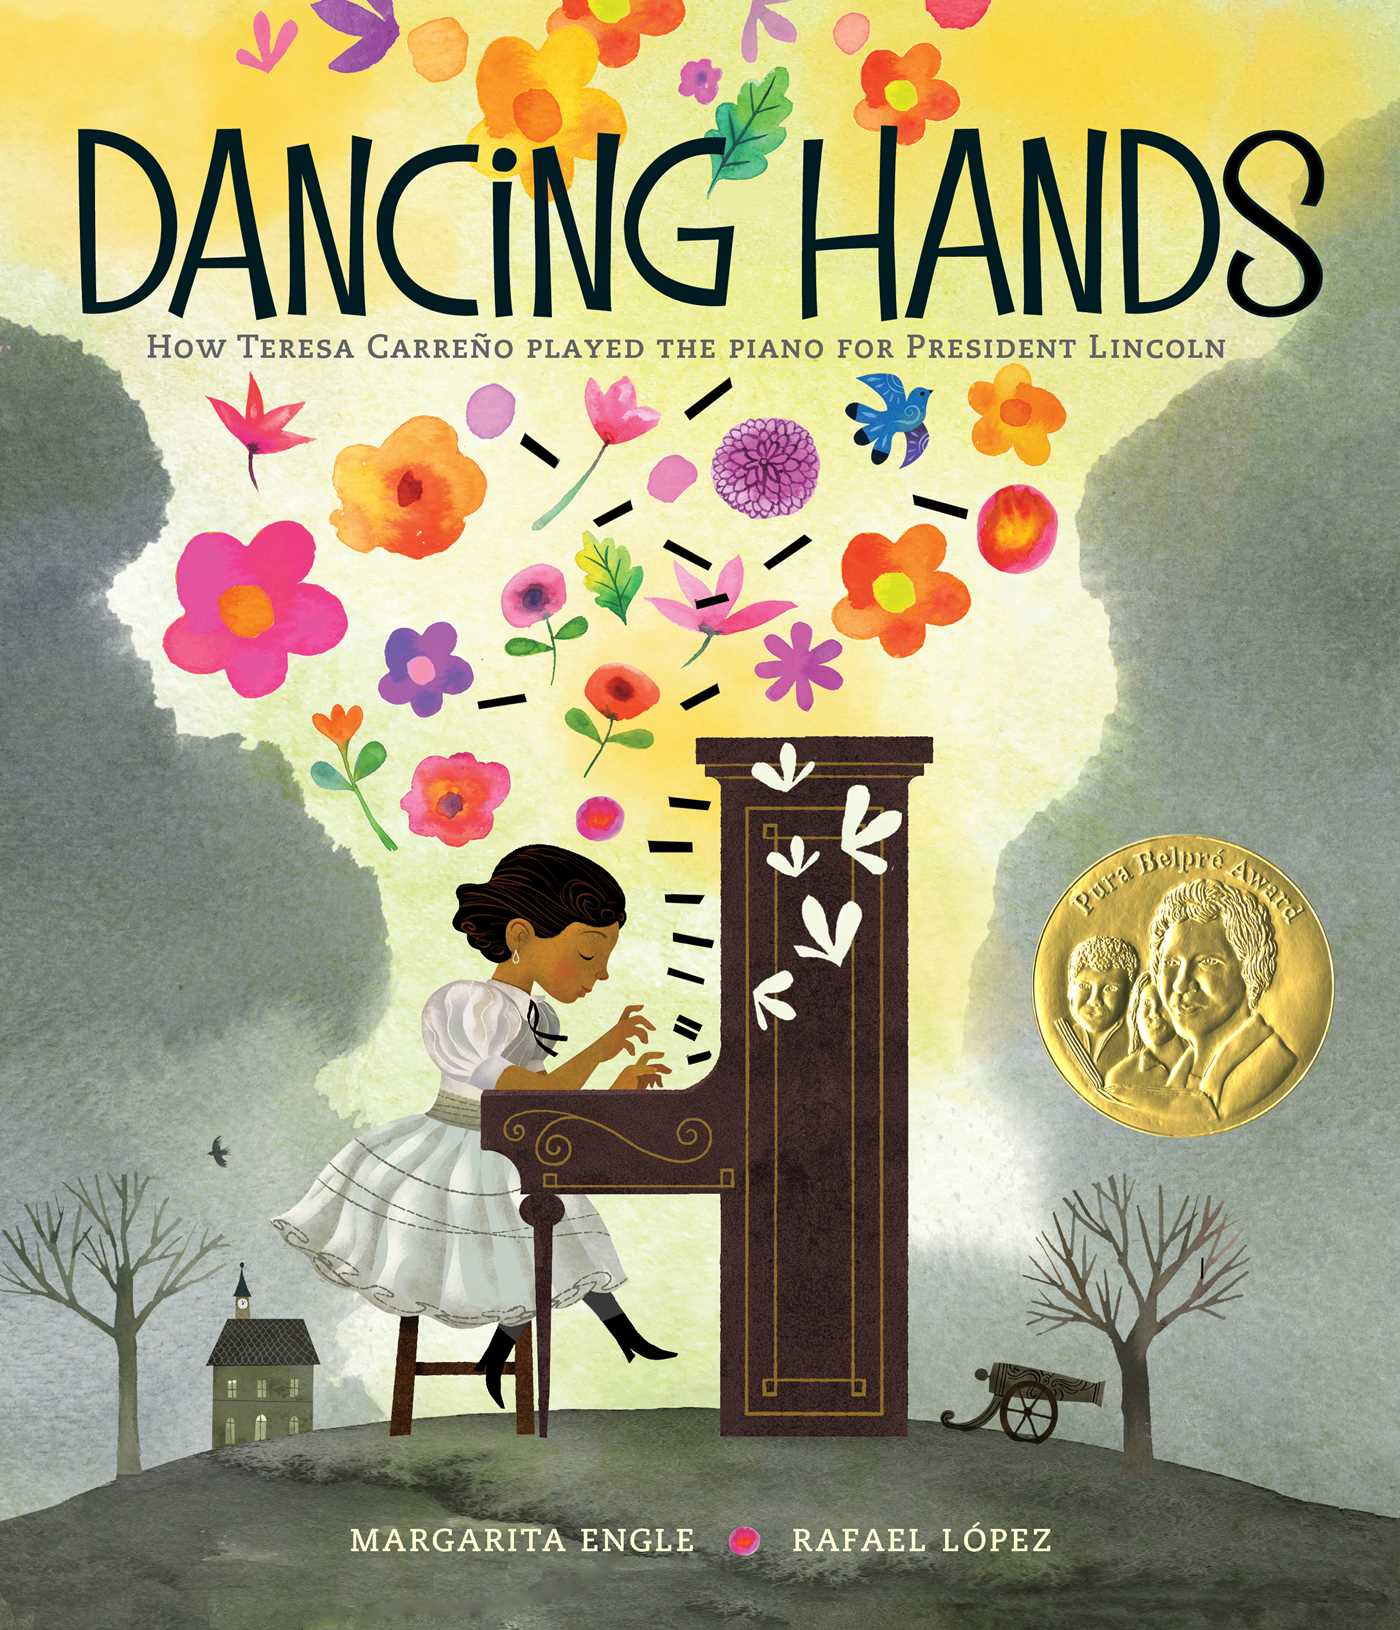 Dancing Hands How Teresa Carreño Played the Piano for President Lincoln